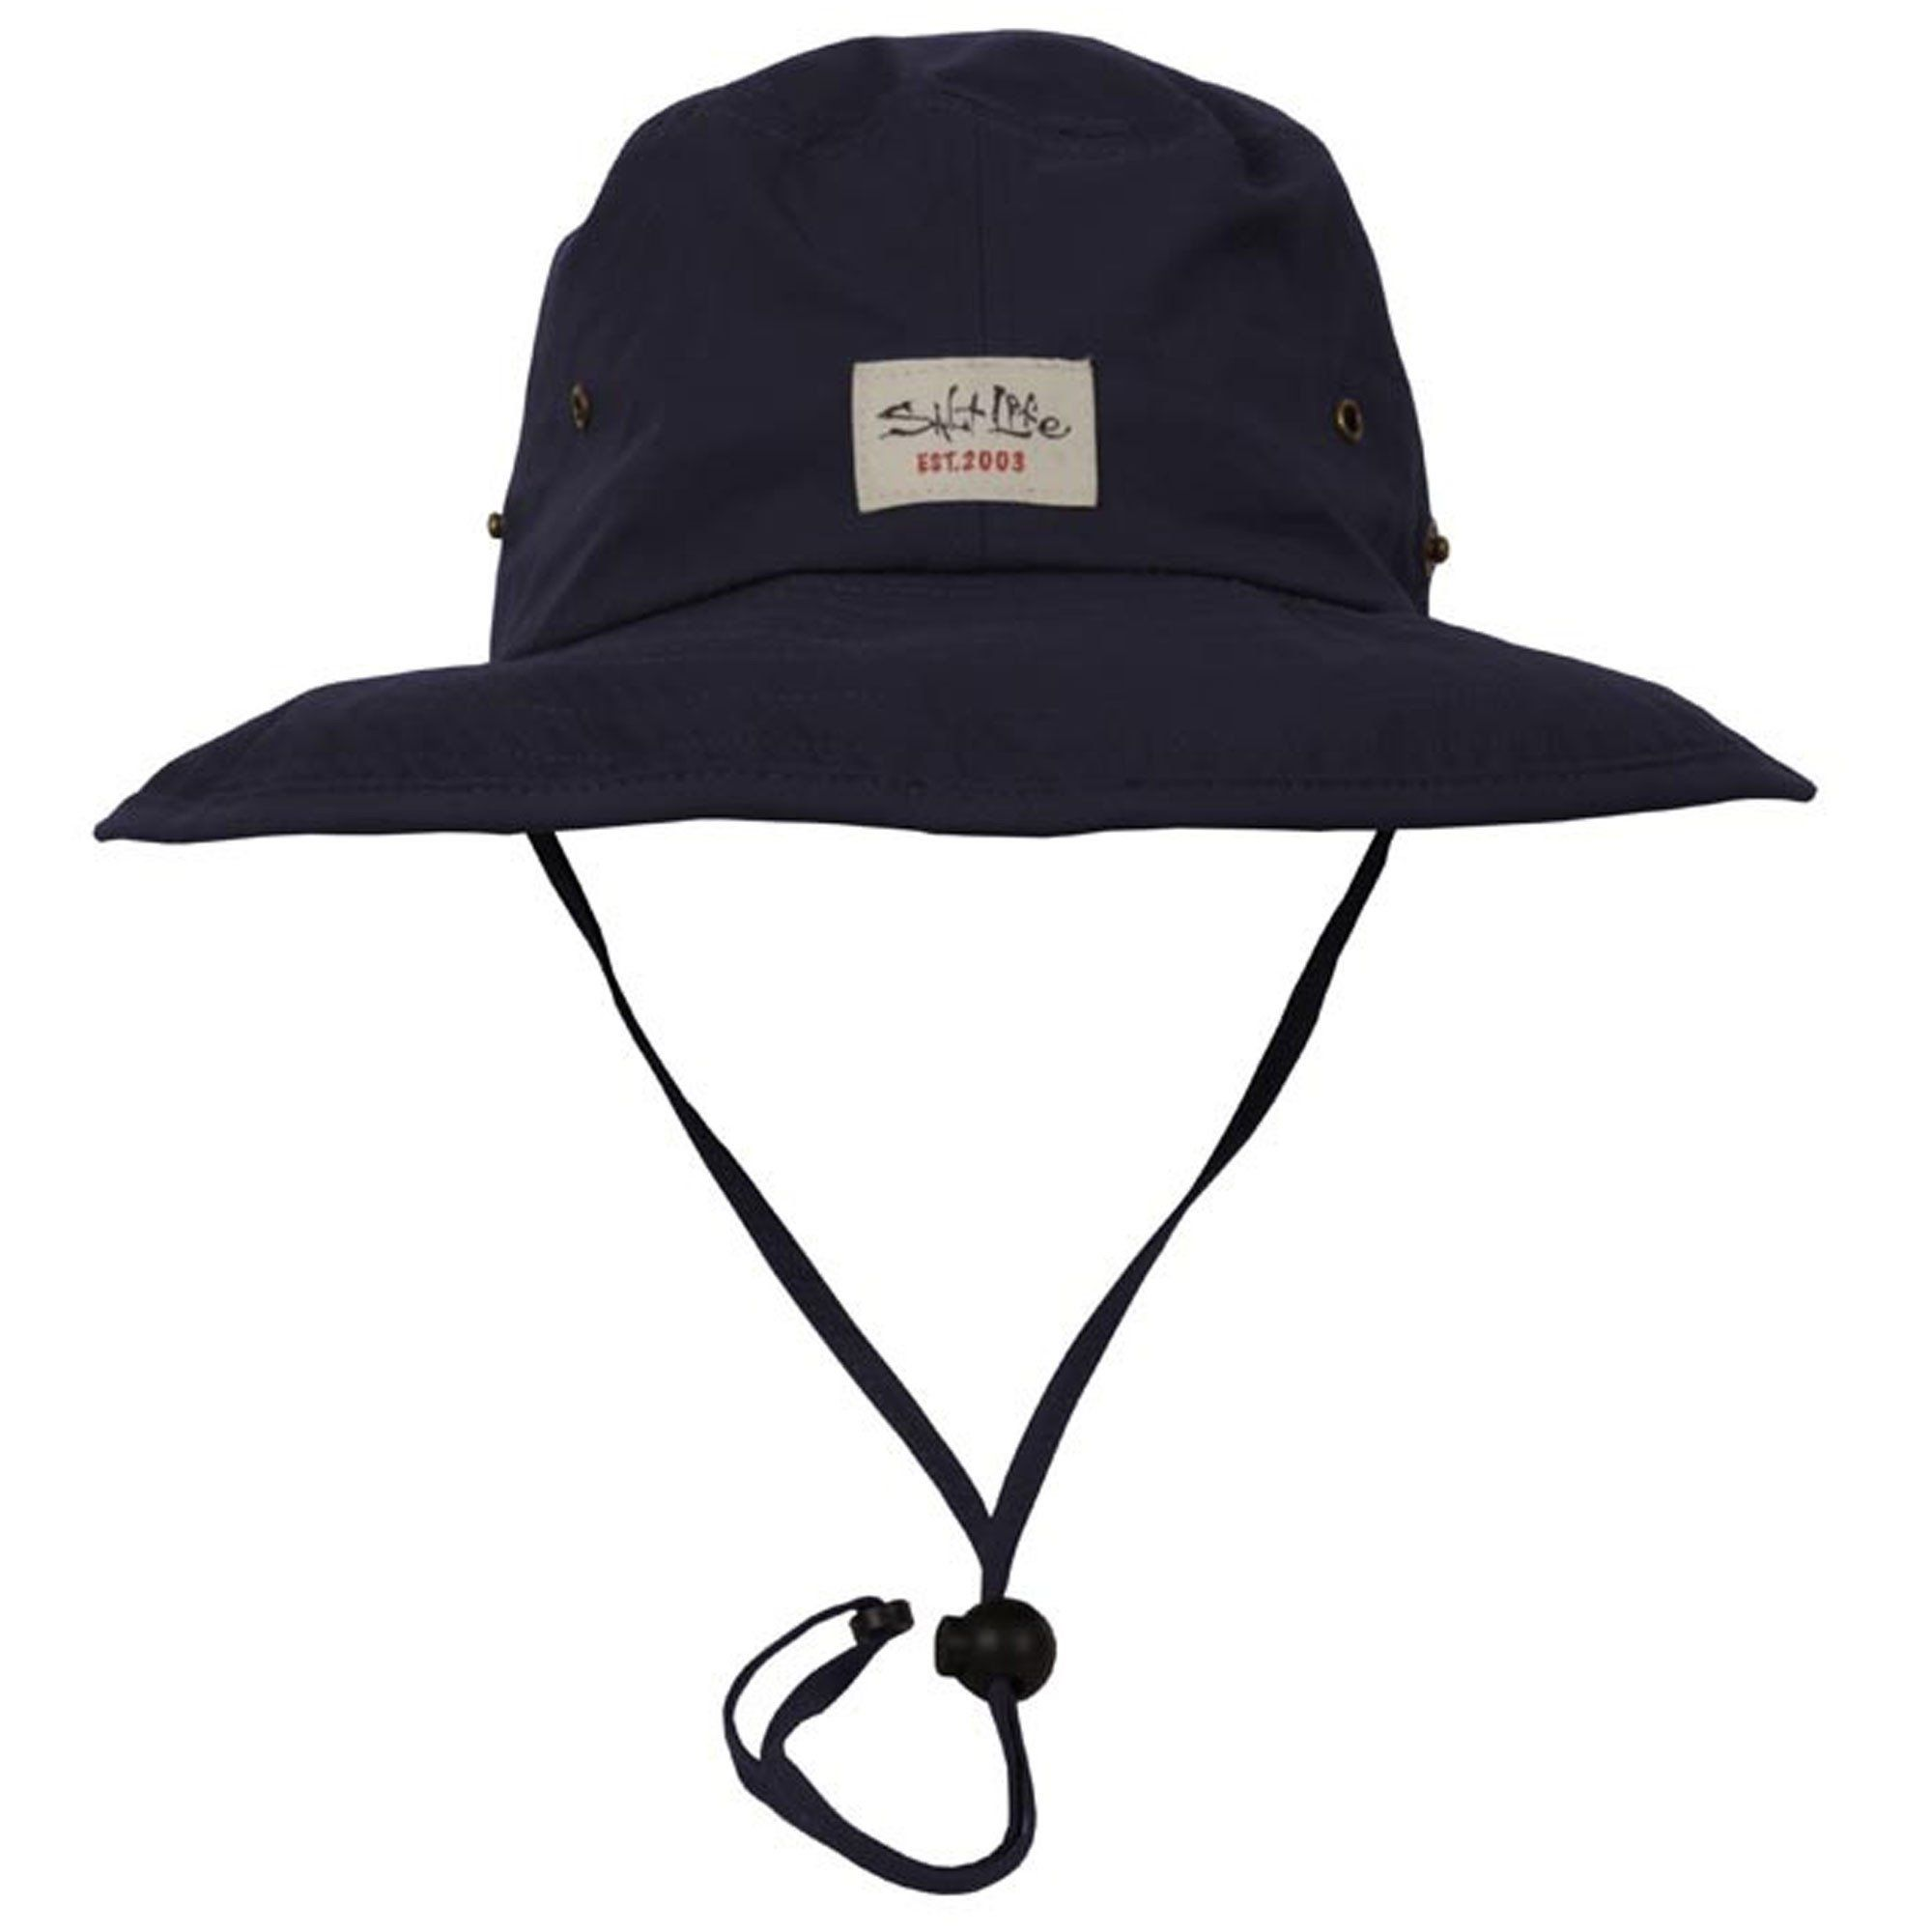 507e8466 The Salt Life Wanderer Boonie hat is made from 56% cotton, 39% nylon, 5%  spandex fabric. This men's hat features an adjustable strap with cinch  drawcord and ...